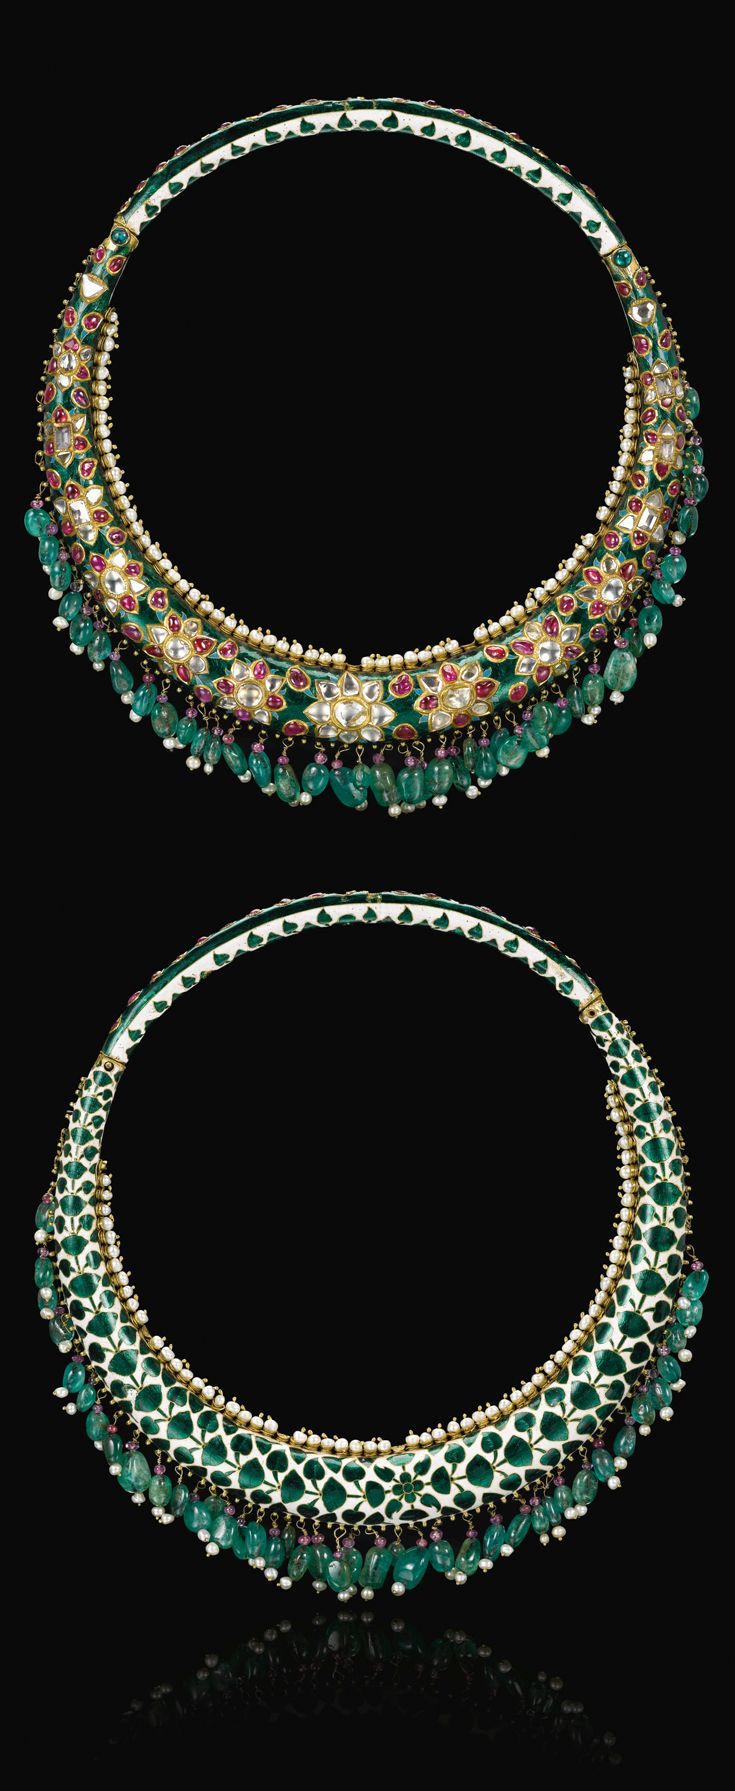 India ~ Rajasthan, Bikaner Maharani torque necklace (Hasli); diamonds, rubies and emeralds set in green enamel using the kundan-mina technique with an inner edge of pearls set in gold cups and an outer fringe of emerald beads, the reverse decorated with a row of green enamel leaves on a white ground   | Late 19th century | Est. 250'000 - 300'000£ ~ (Sept '14)